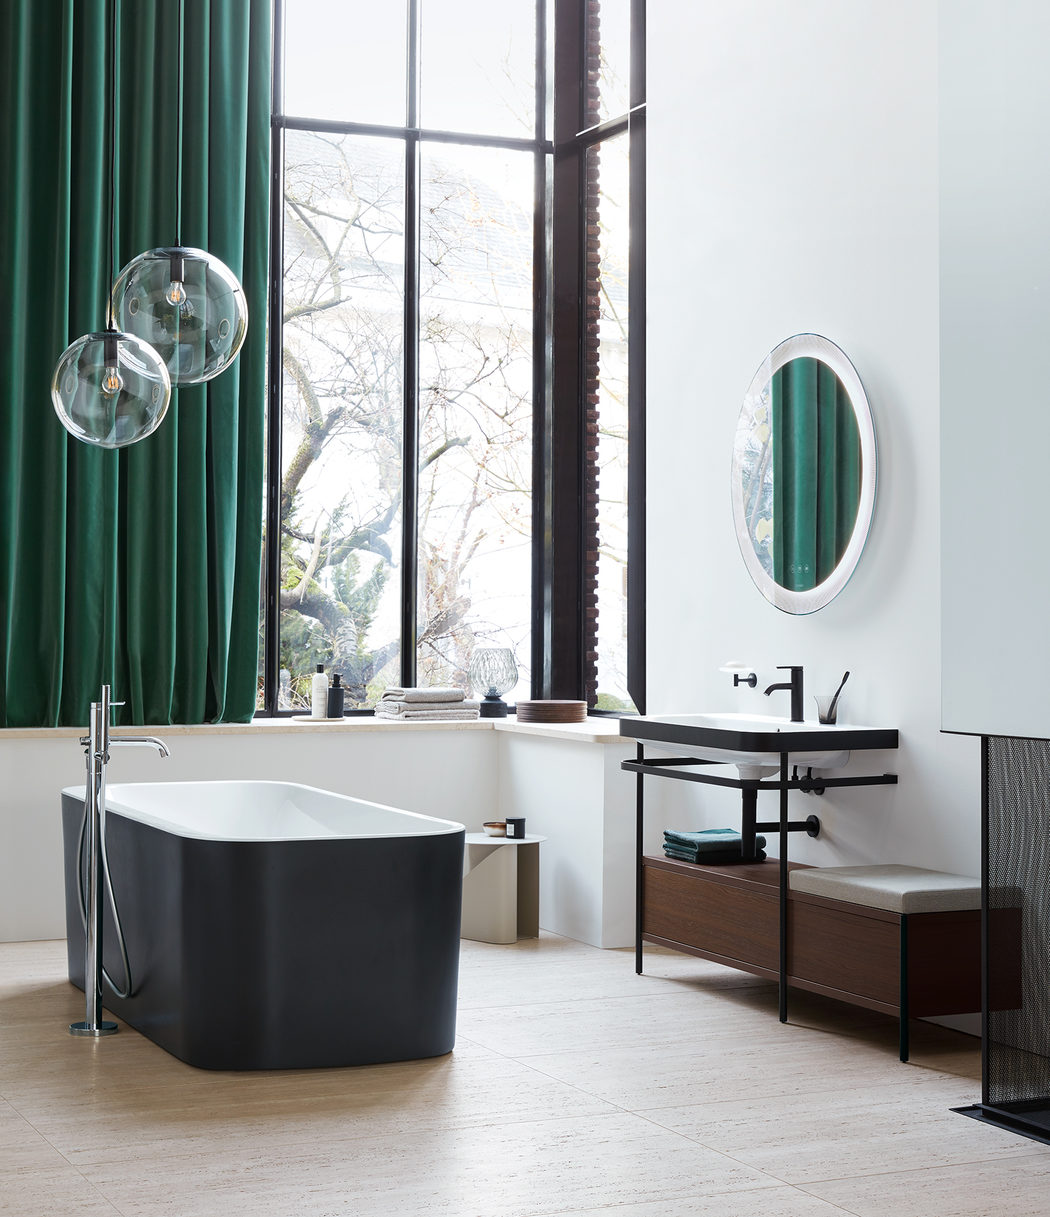 Image gallery Duravit Happy D.2 Plus